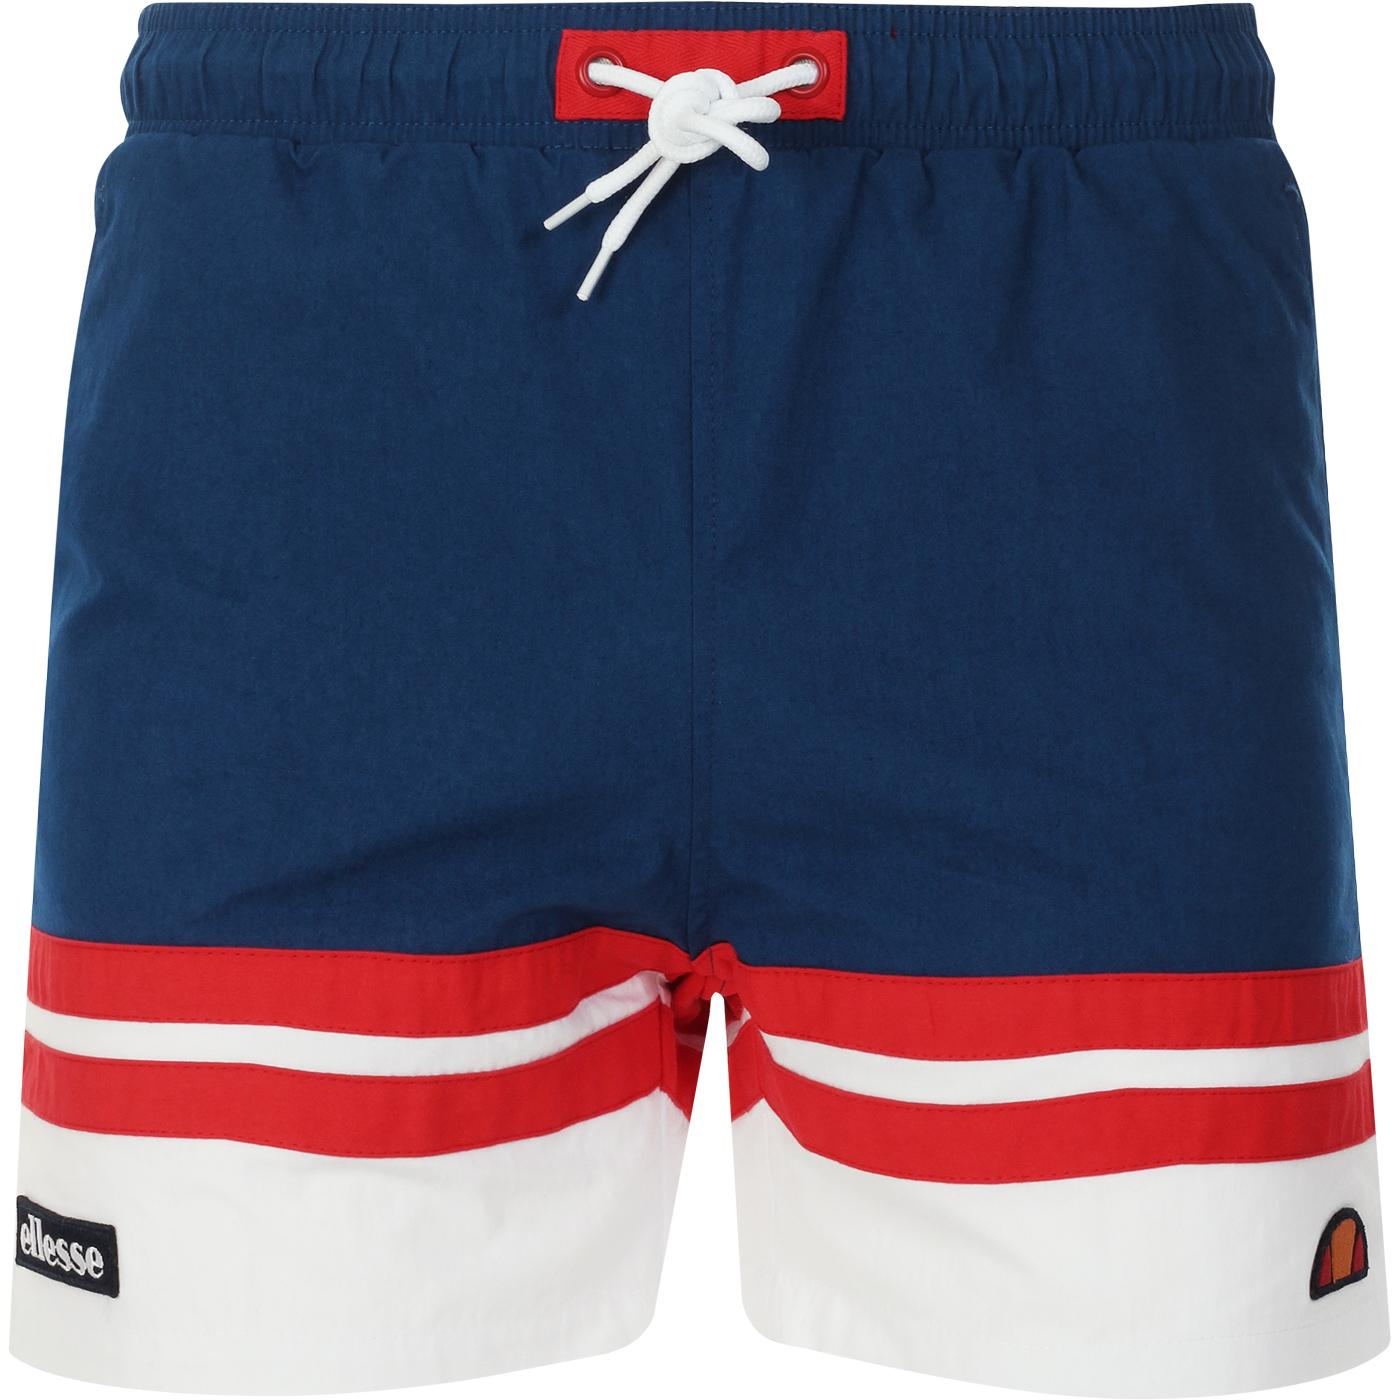 Cefalu ELLESSE Men's Retro Swim Shorts Blue